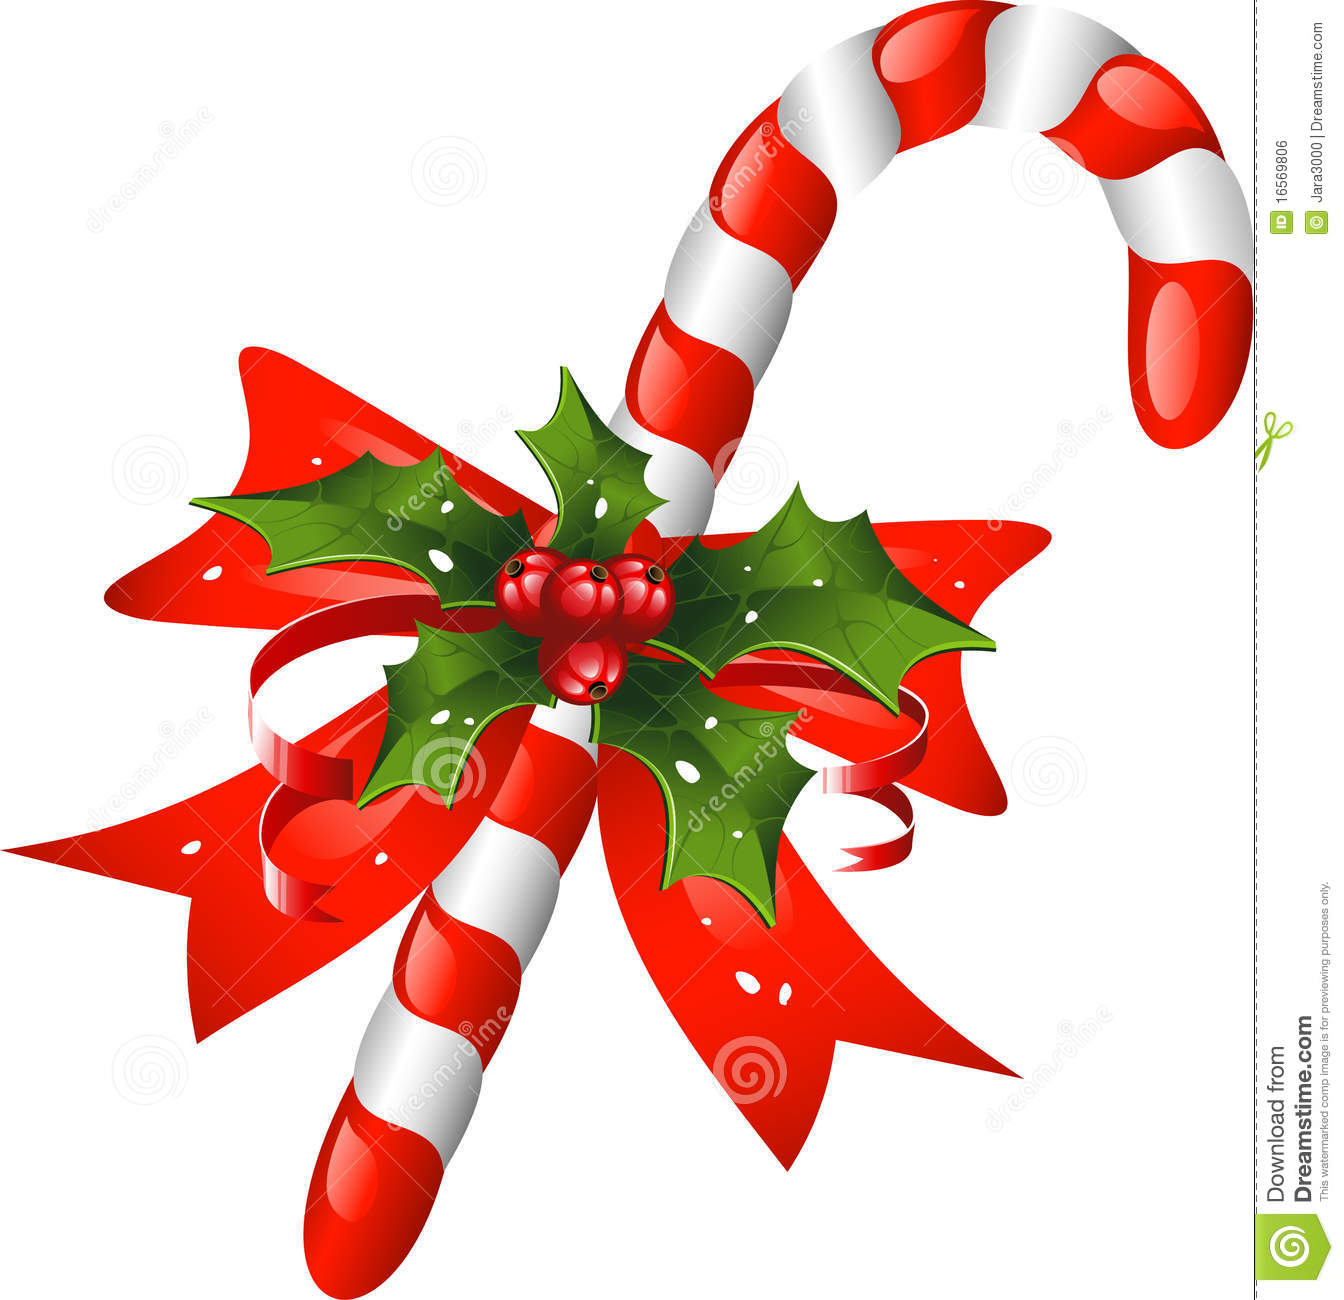 christmas candy cane decorated with a bow and holl - Christmas Candy Cane